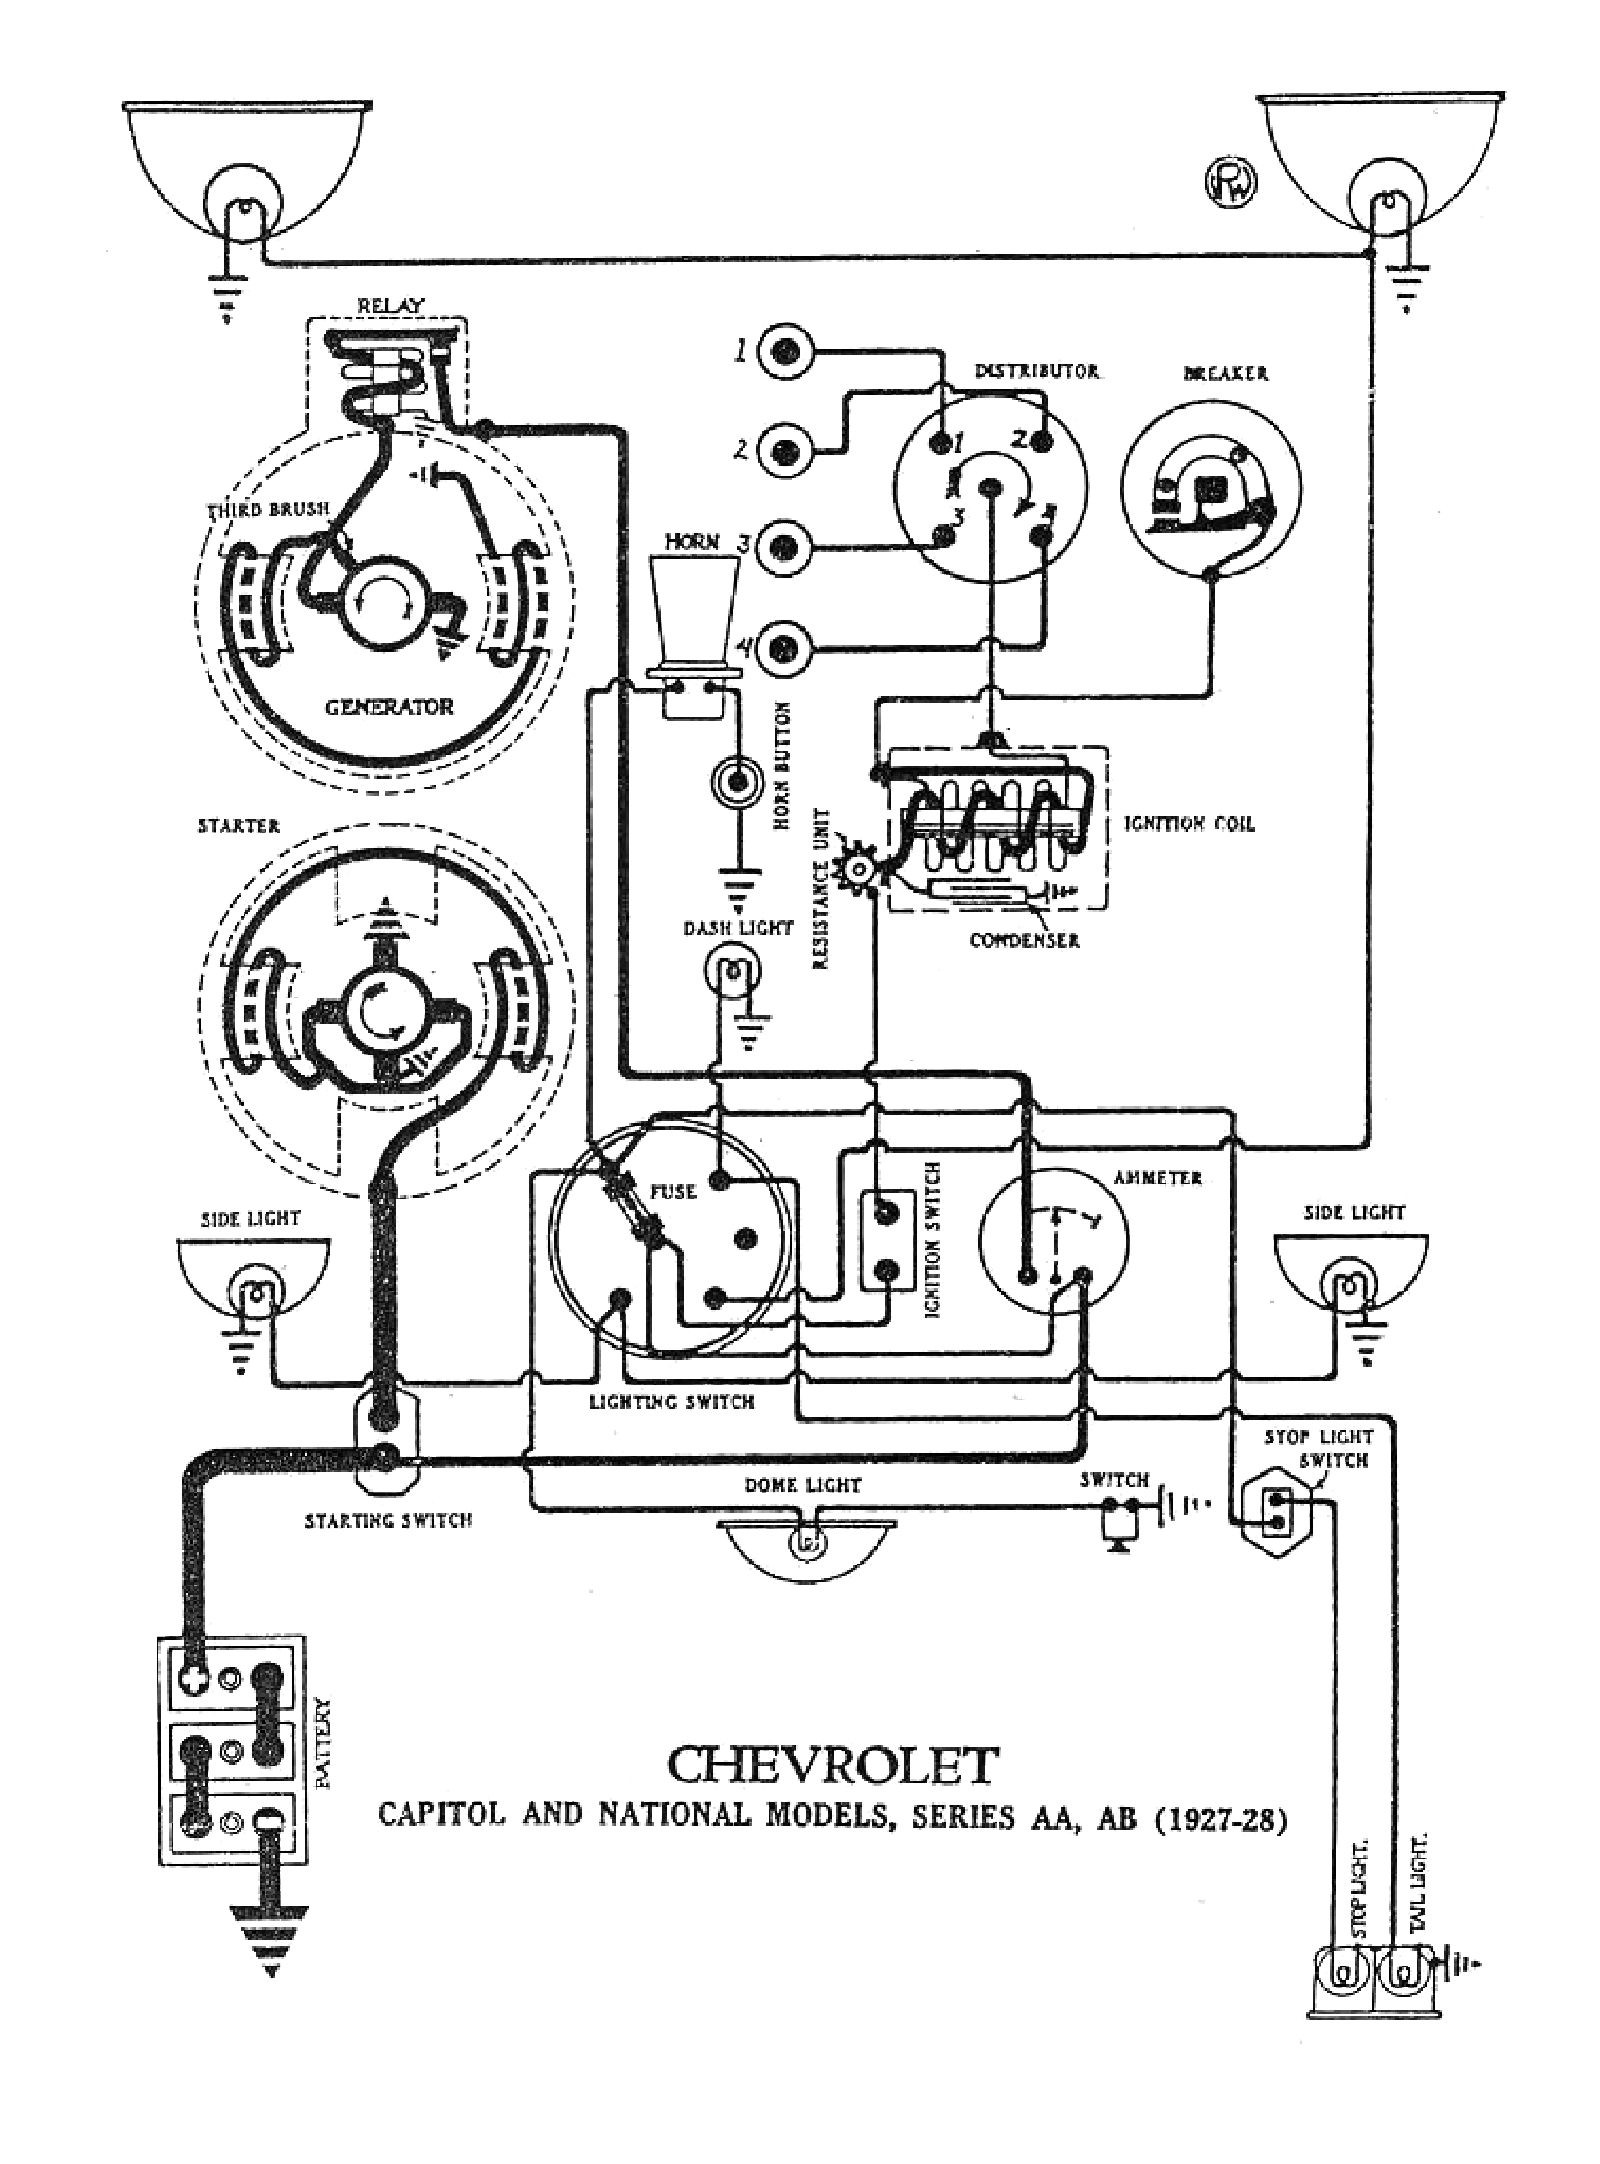 1998 Blazer Engine Diagram Wiring Library Chevy S10 Diagrams Of Need Diagran